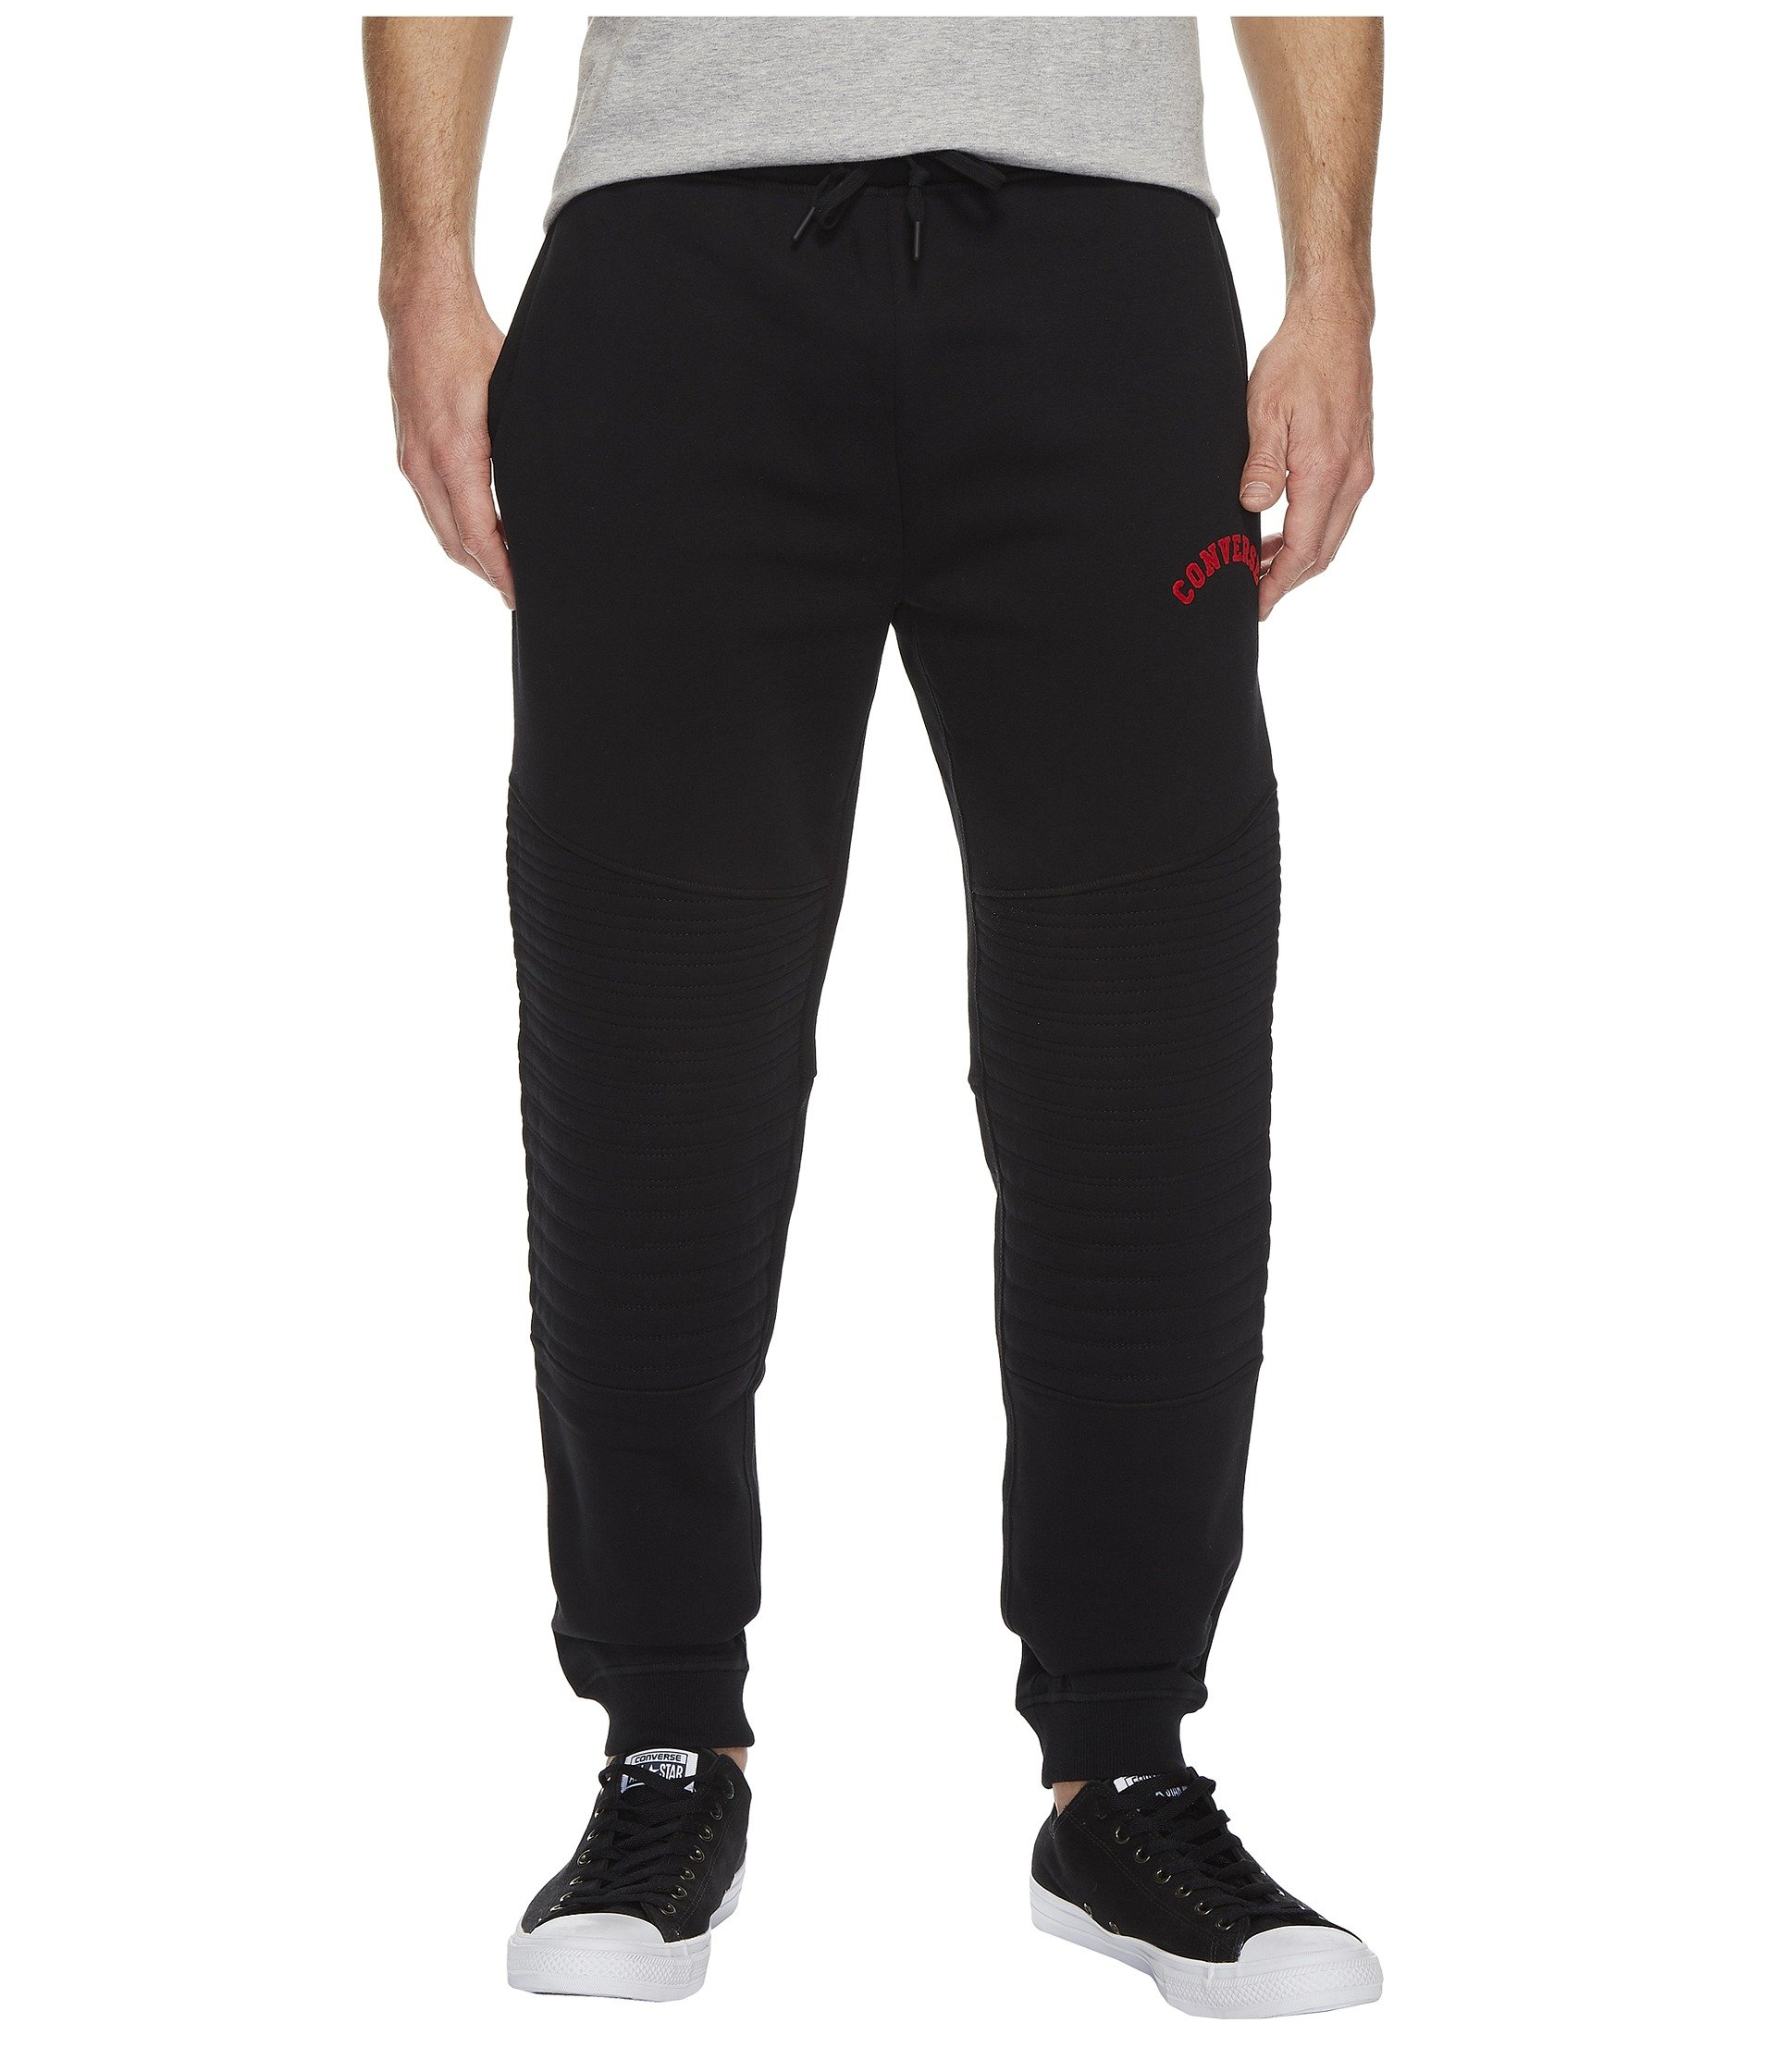 Converse Quilted Panel Jogger at 6pm : quilted panel - Adamdwight.com